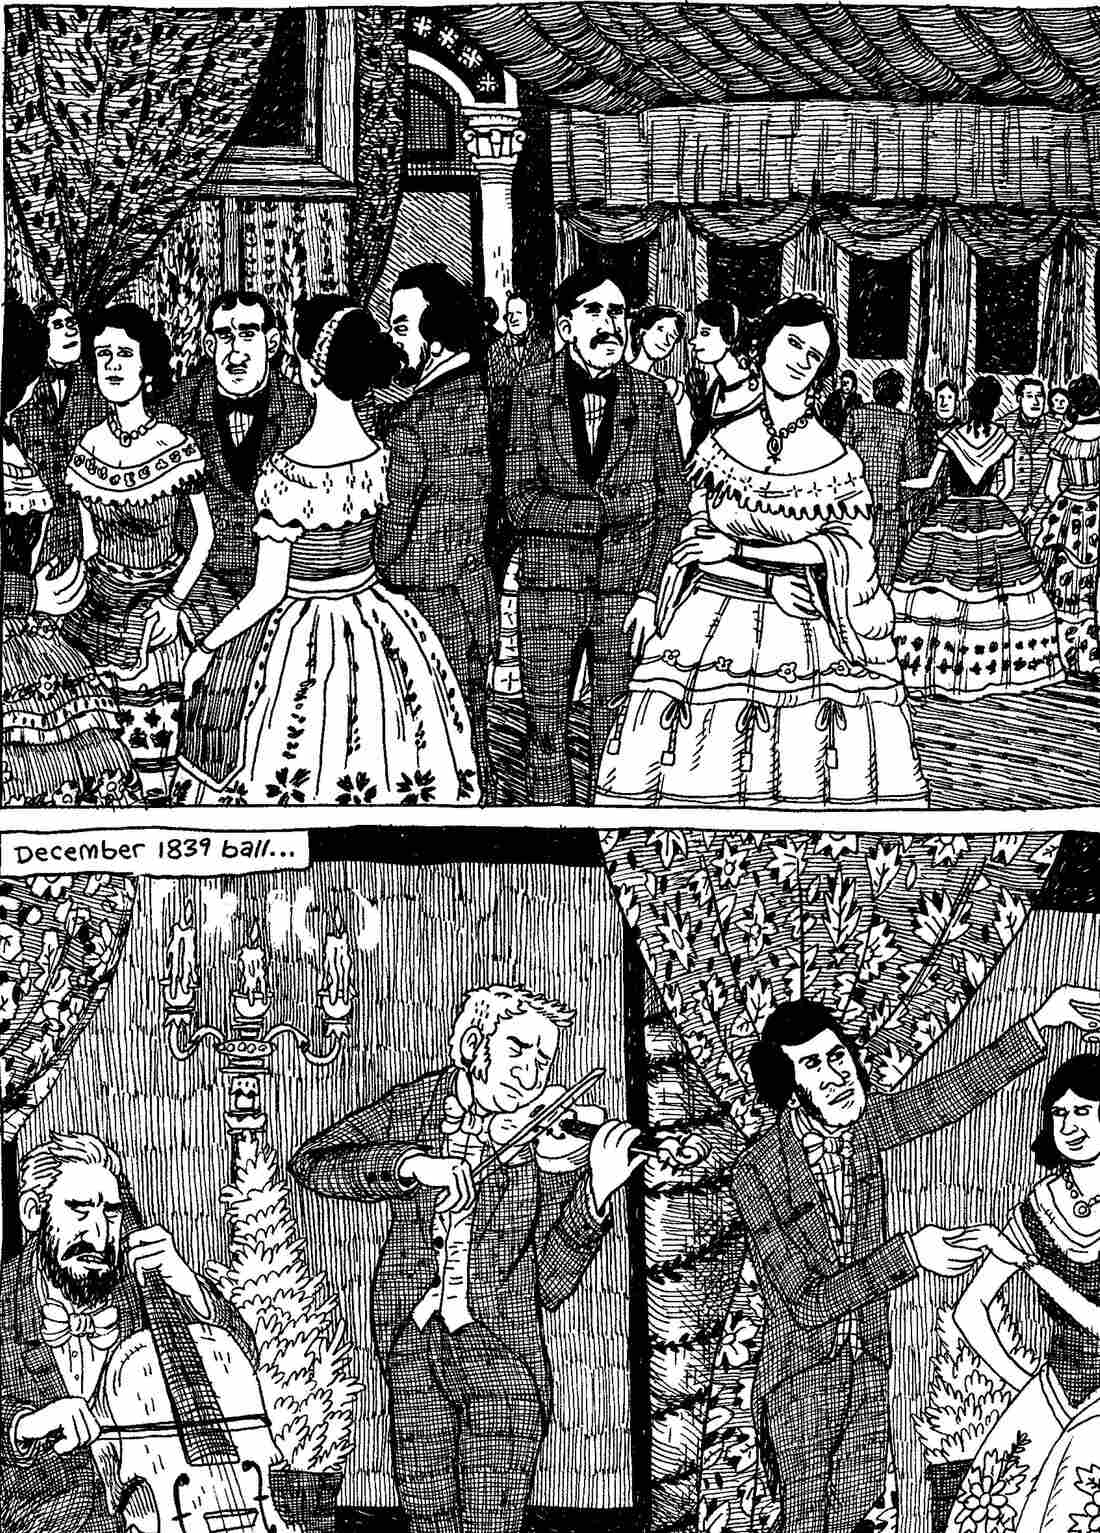 Fancy types, cuttin' loose. From The Hypo: The Melancholic Young Lincoln © 2012 Noah Van Sciver